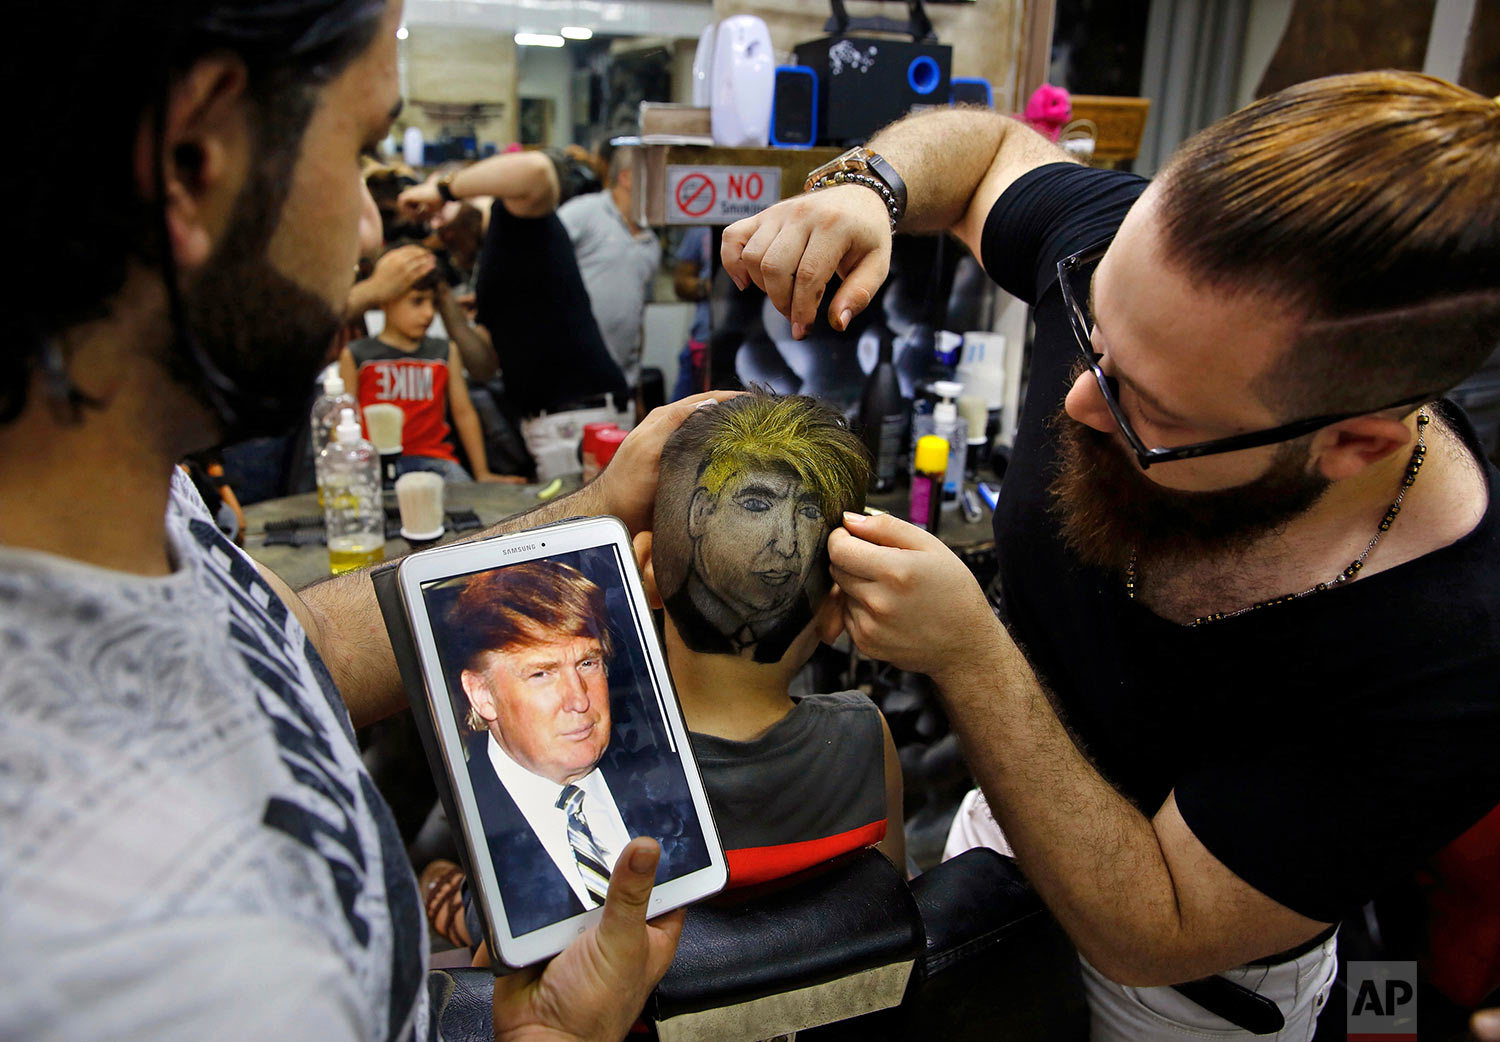 Muhannad Khaled Omar, right, prepares an image of U.S. President Donald Trump on the back of a customer's head at his barber shop in Burj al-Barajneh, southern Beirut, Lebanon on July 14, 2017. (AP Photo/Bilal Hussein)